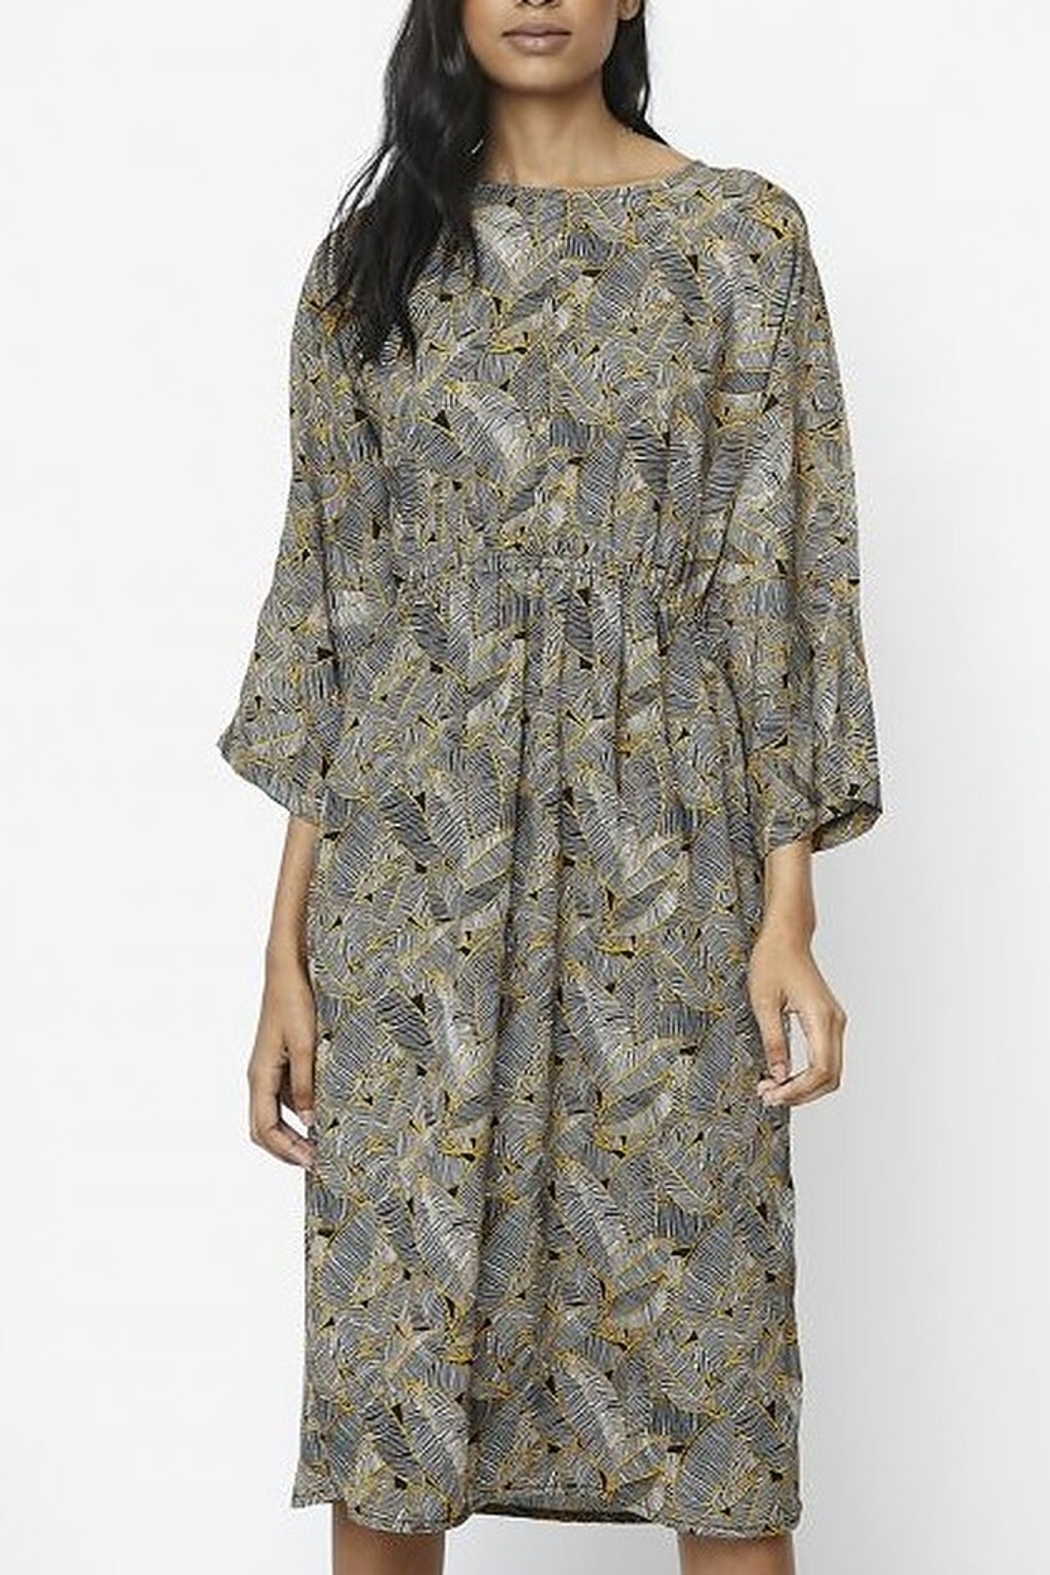 Compania Fantastica Plant Print Dress - Main Image